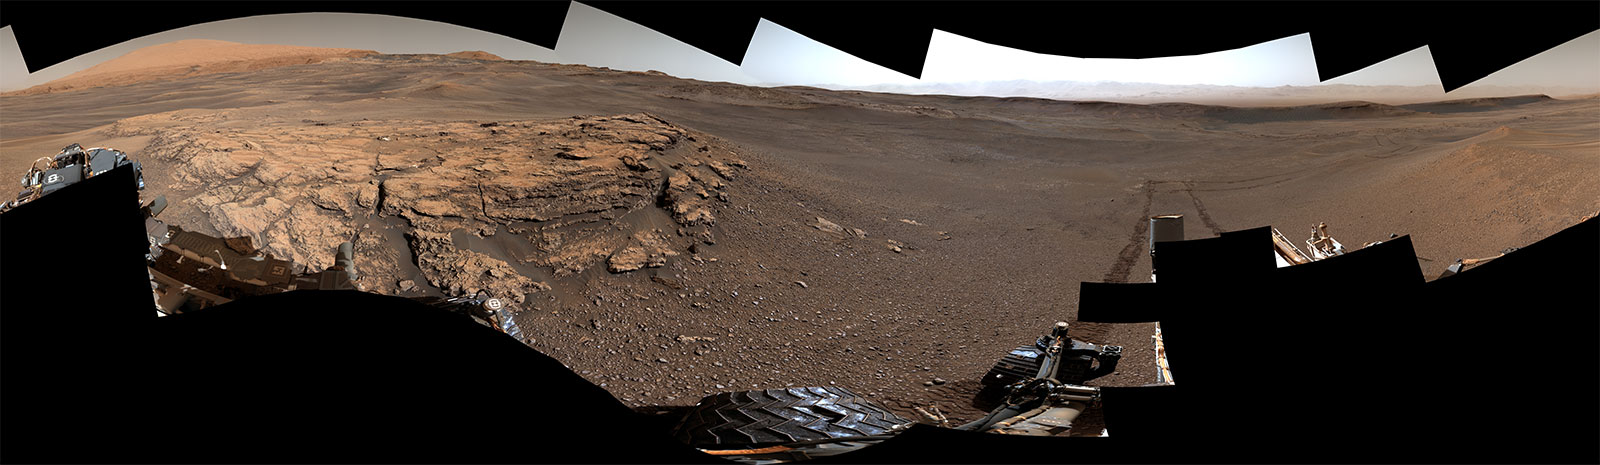 "Curiosity captured this 360-degree panorama of a location on Mars called ""Teal Ridge"" on June 18, 2019. This location is part of a larger region the rover has been exploring called the ""clay-bearing unit"" on the side of Mount Sharp, which is inside Gale Crater."